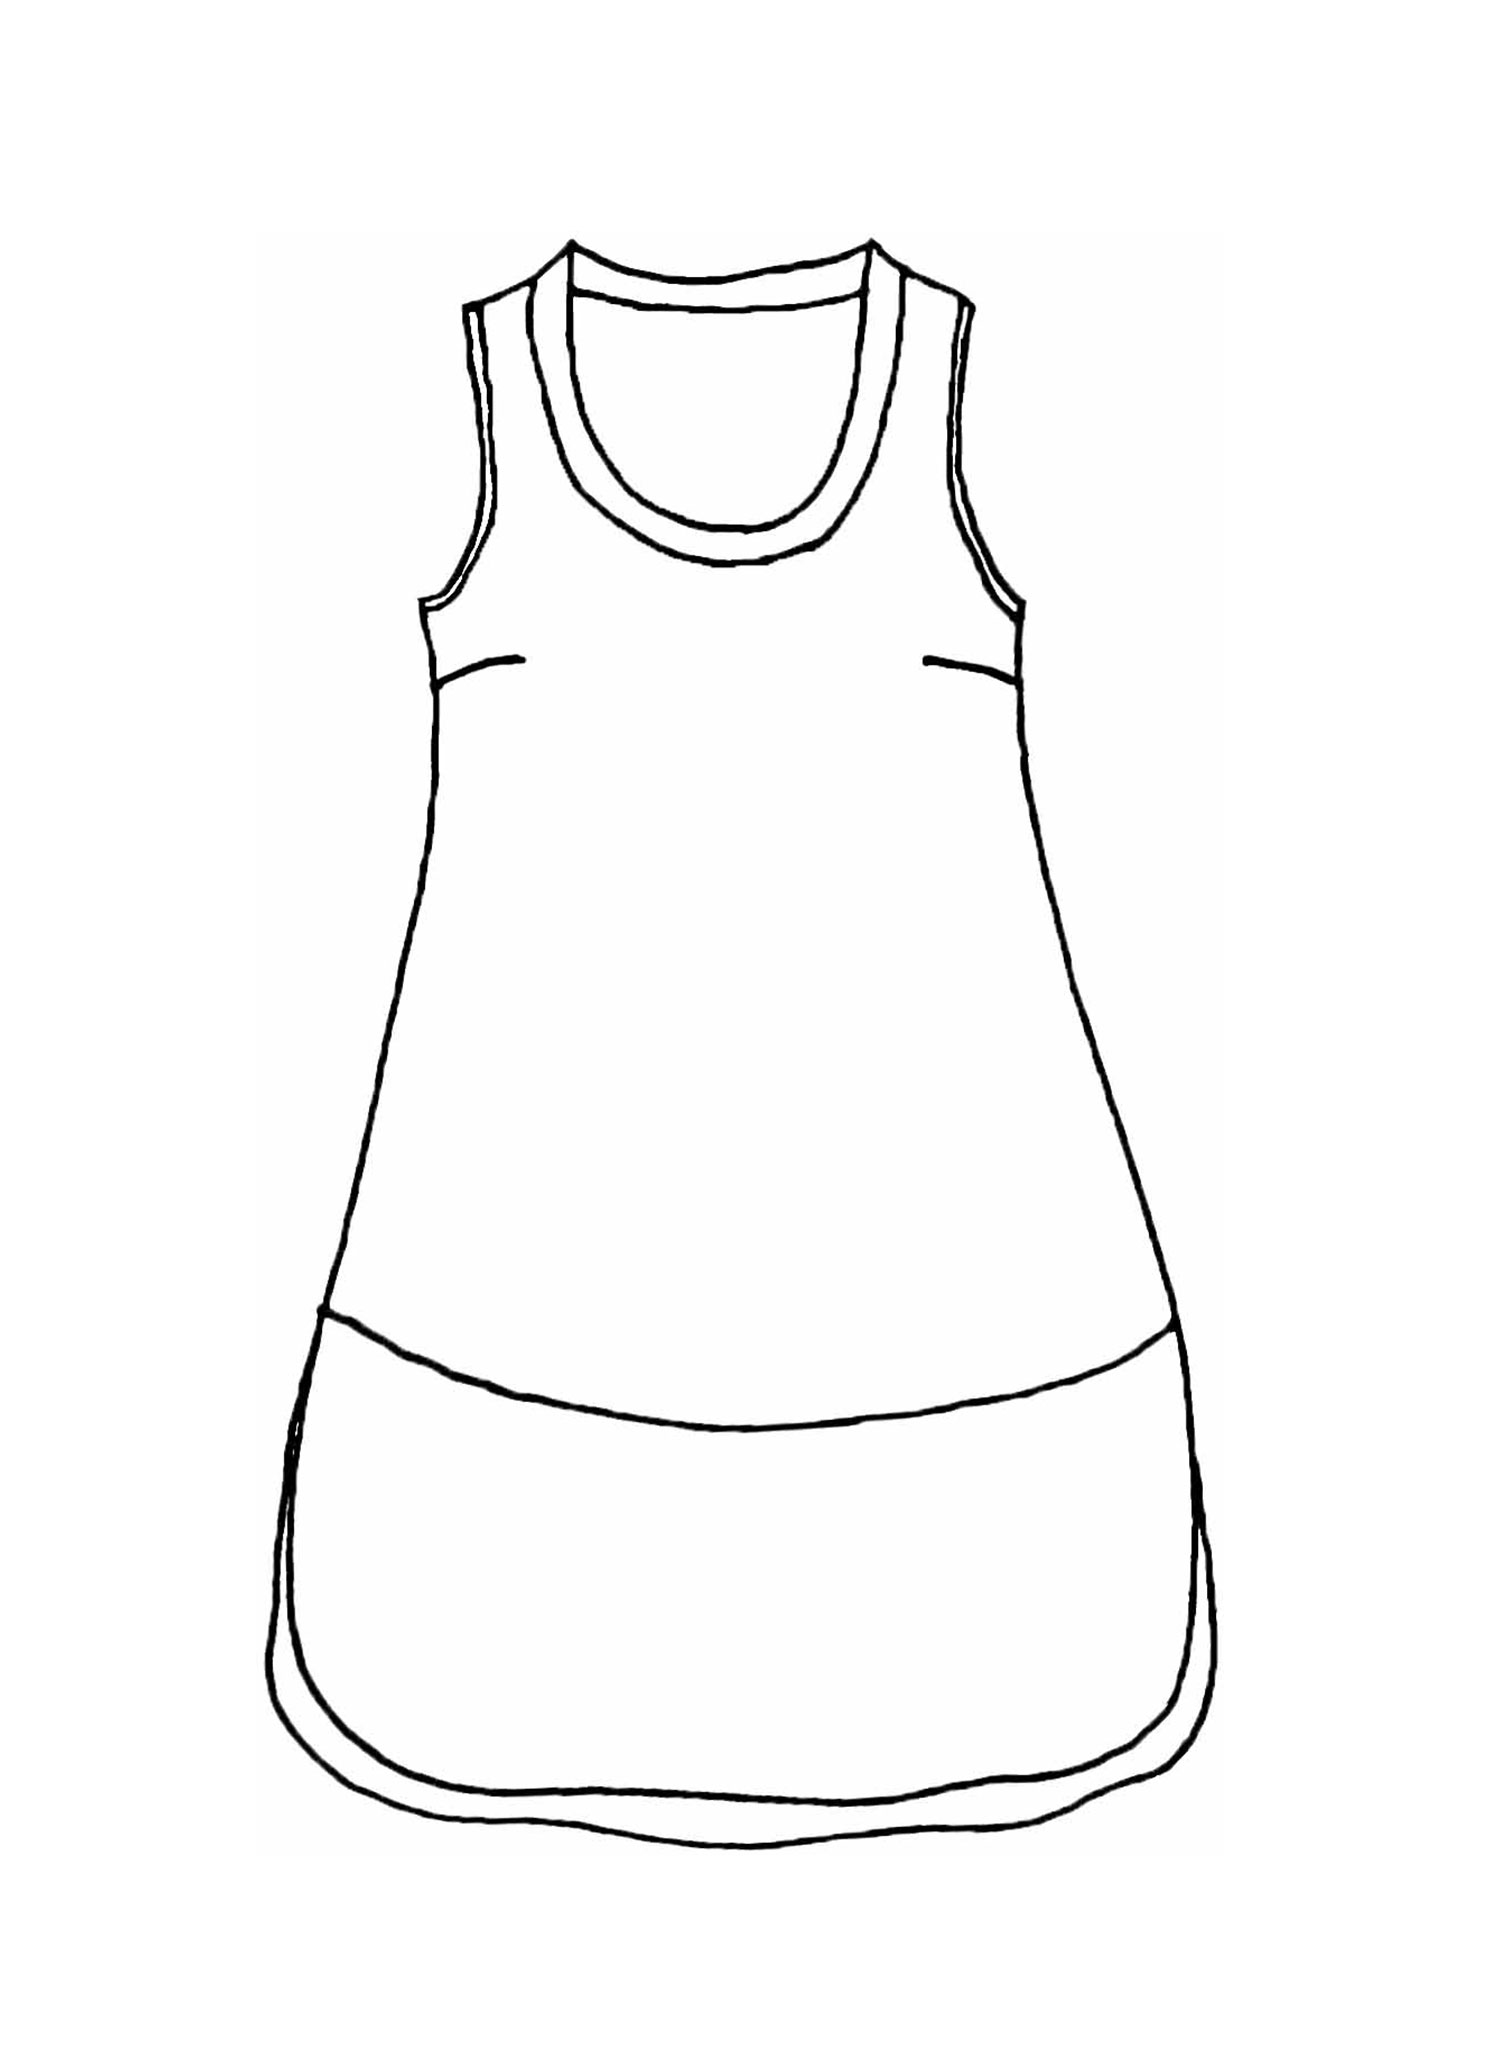 Rosy Dress sketch image